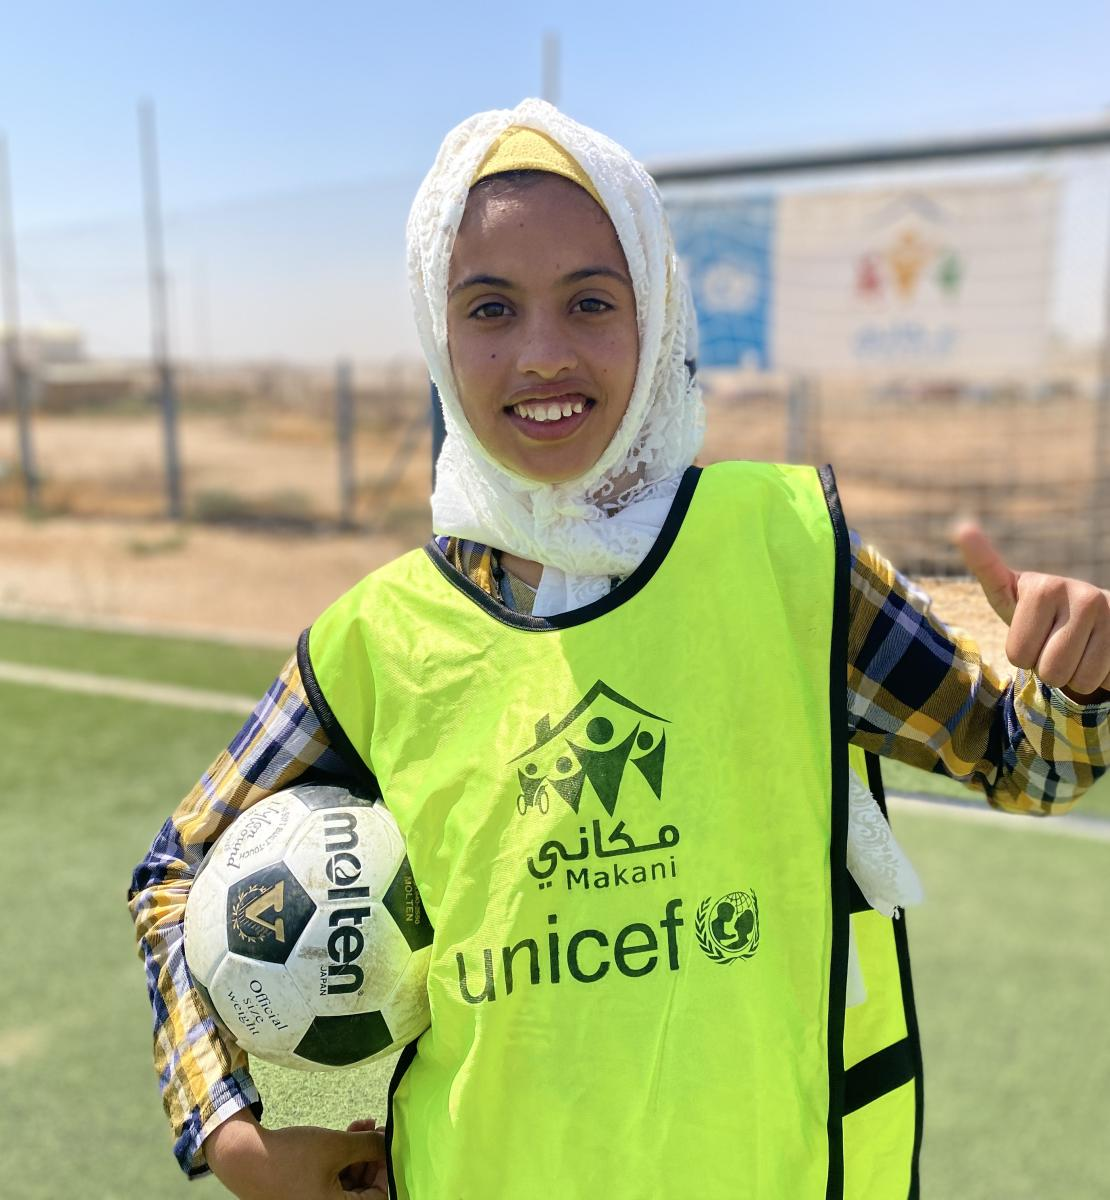 A smiling young girl holds a soccer ball in one arm and gives the camera a thumbs up with her other hand.